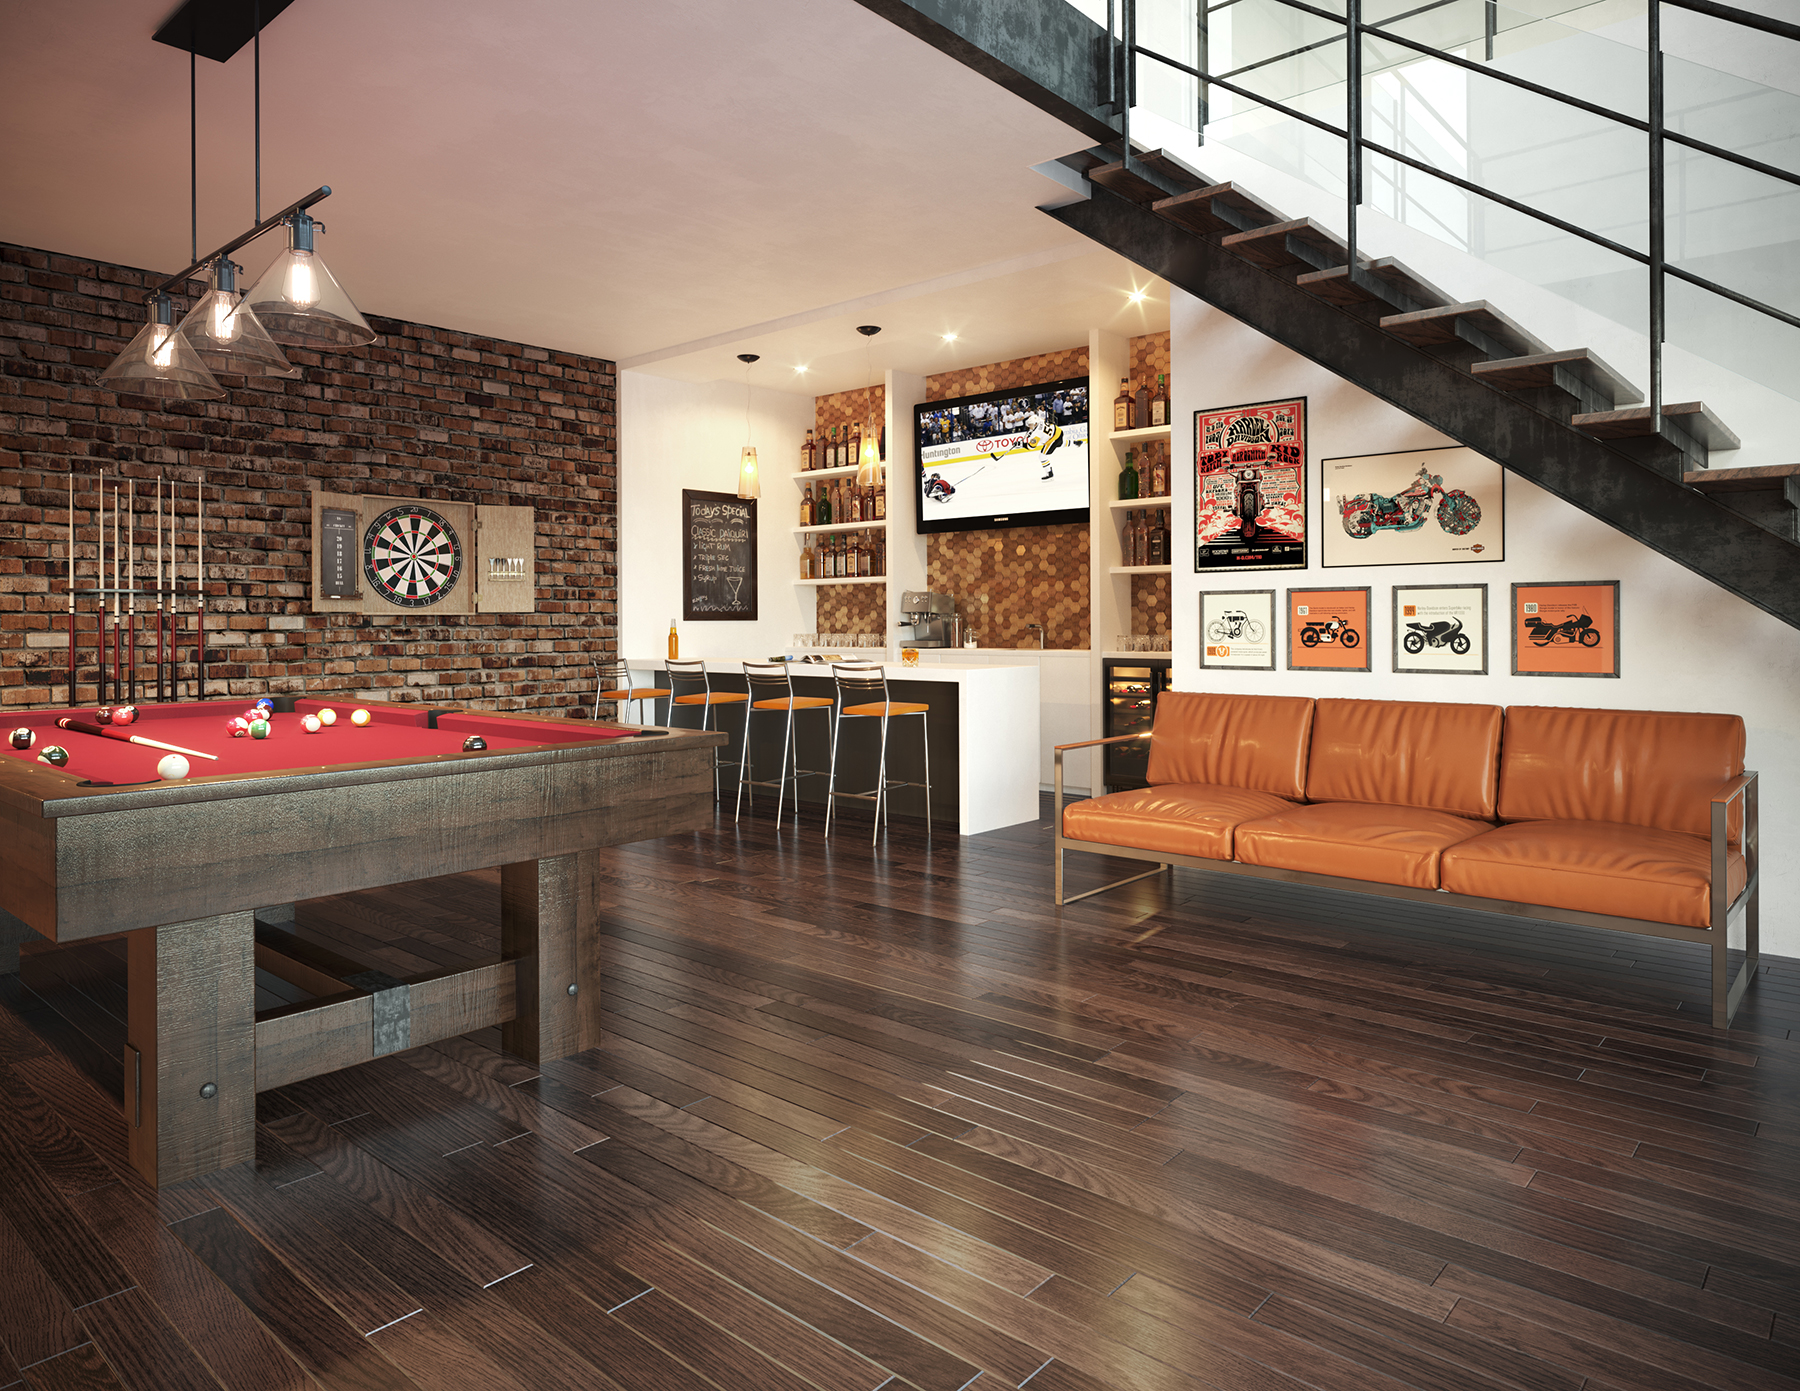 salle de billard bar sous sol illustration 3d photor aliste montr al. Black Bedroom Furniture Sets. Home Design Ideas